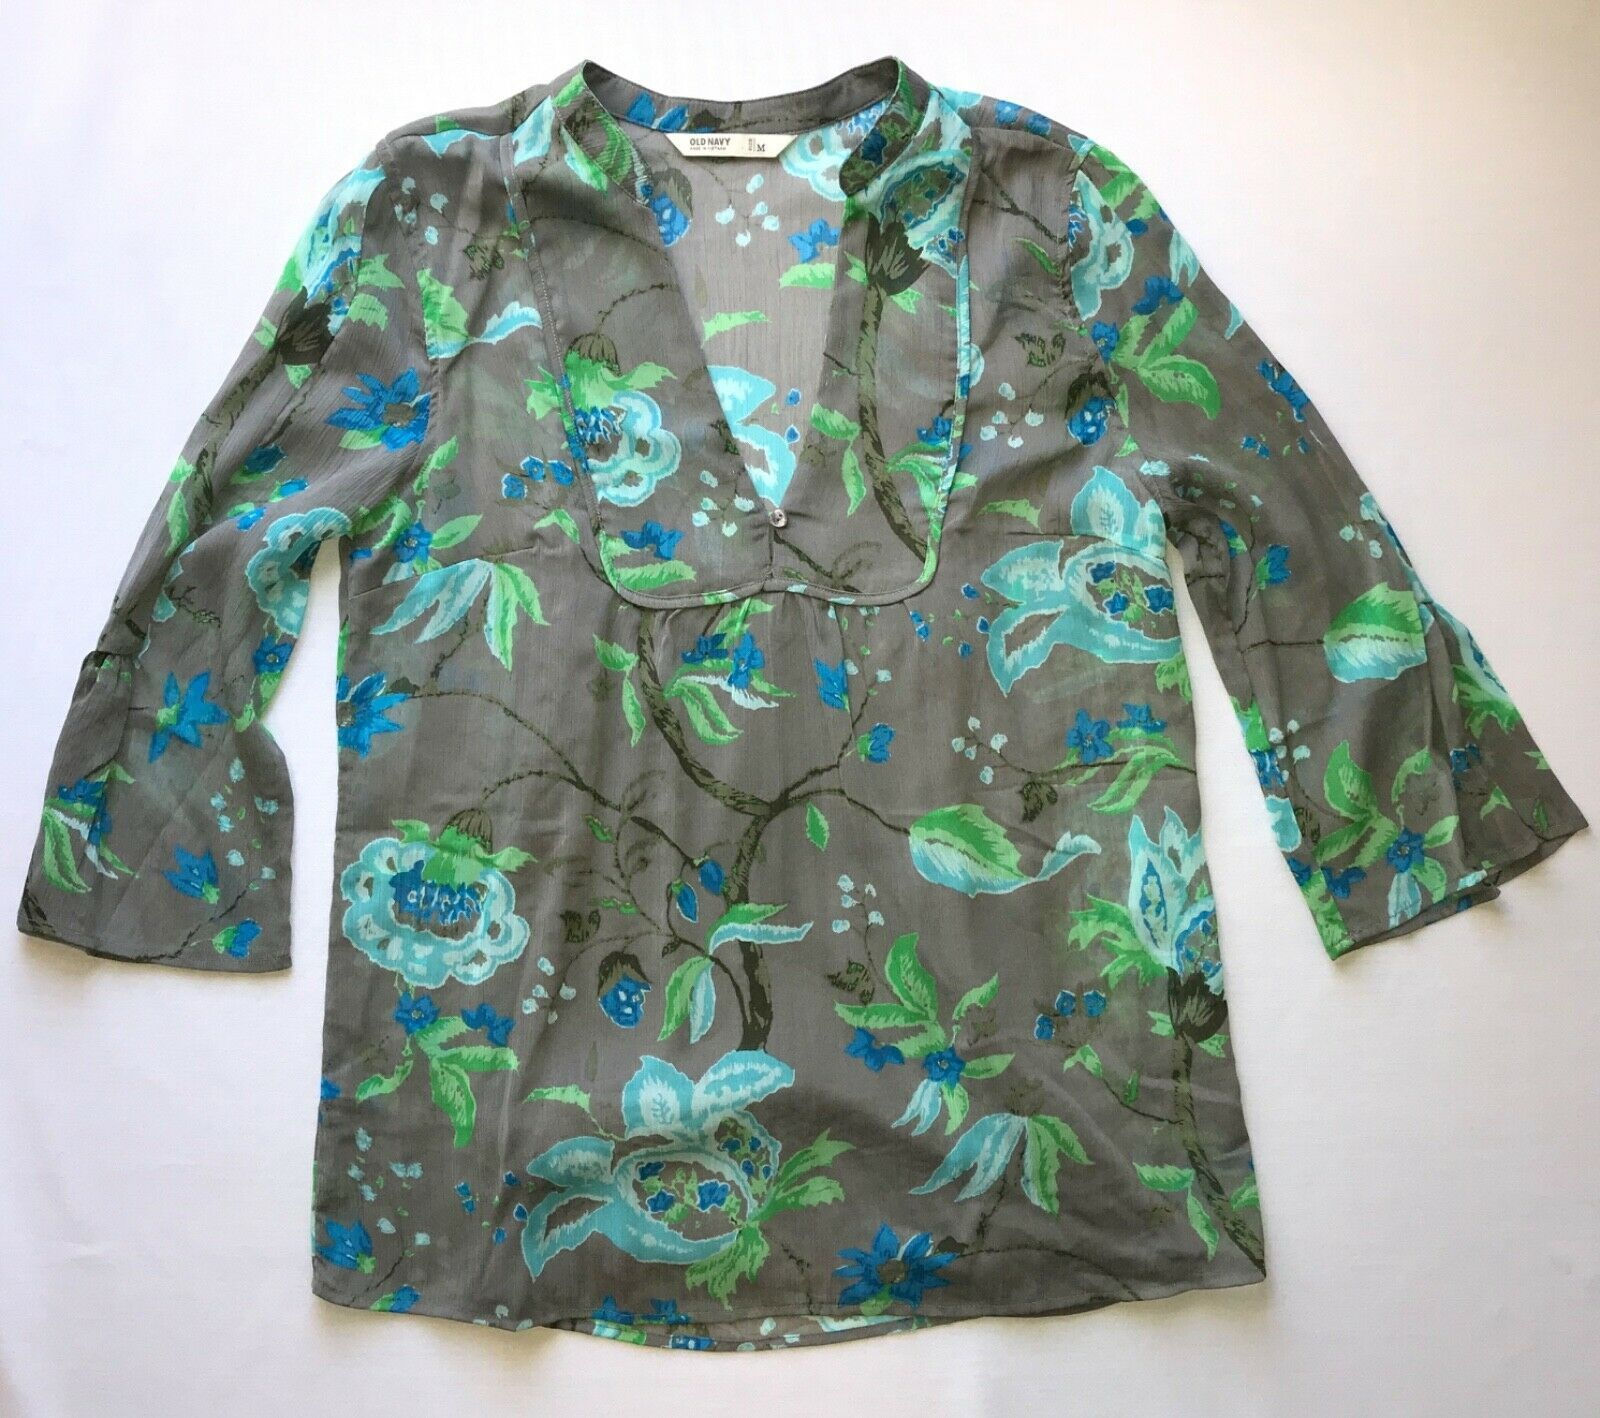 Primary image for Floral Print Blouse w/ 3/4 Sleeves and open V Neck by Old Navy in M